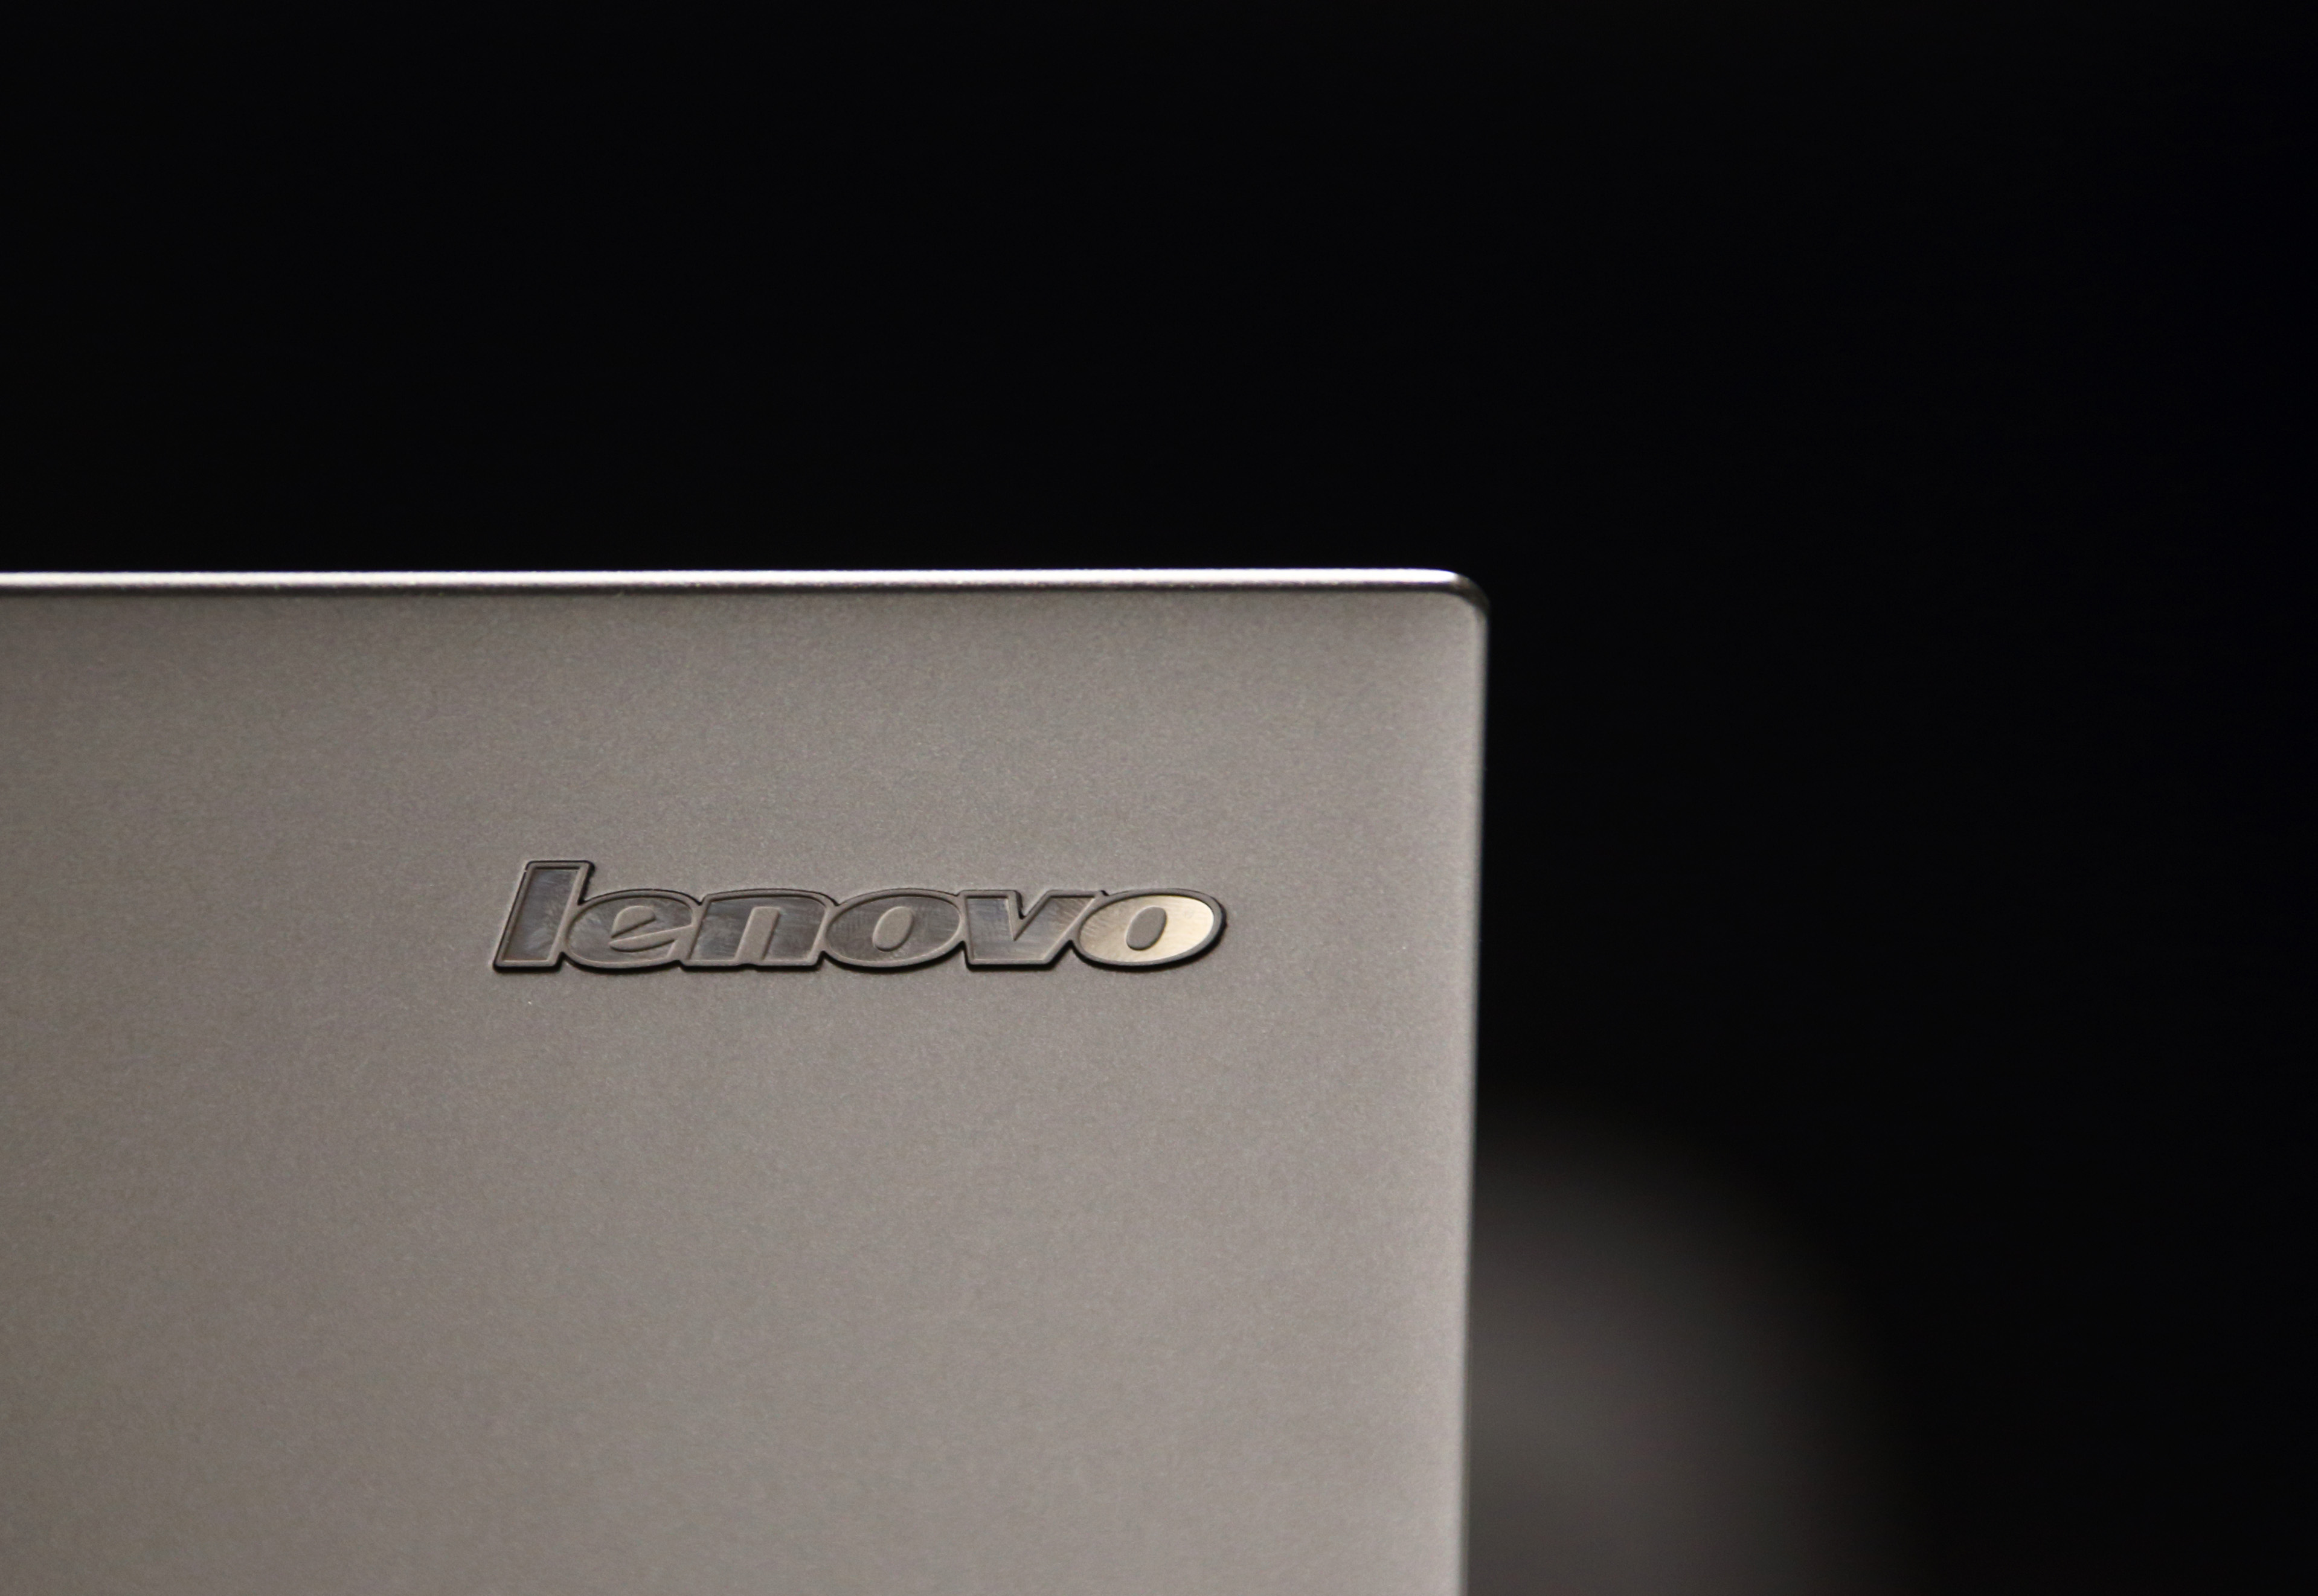 A Lenovo Group Ltd. logo is seen on a laptop computer displayed at the company's flagship store on Qianmen Street in Beijing, China, on Tuesday, Nov. 11, 2014.